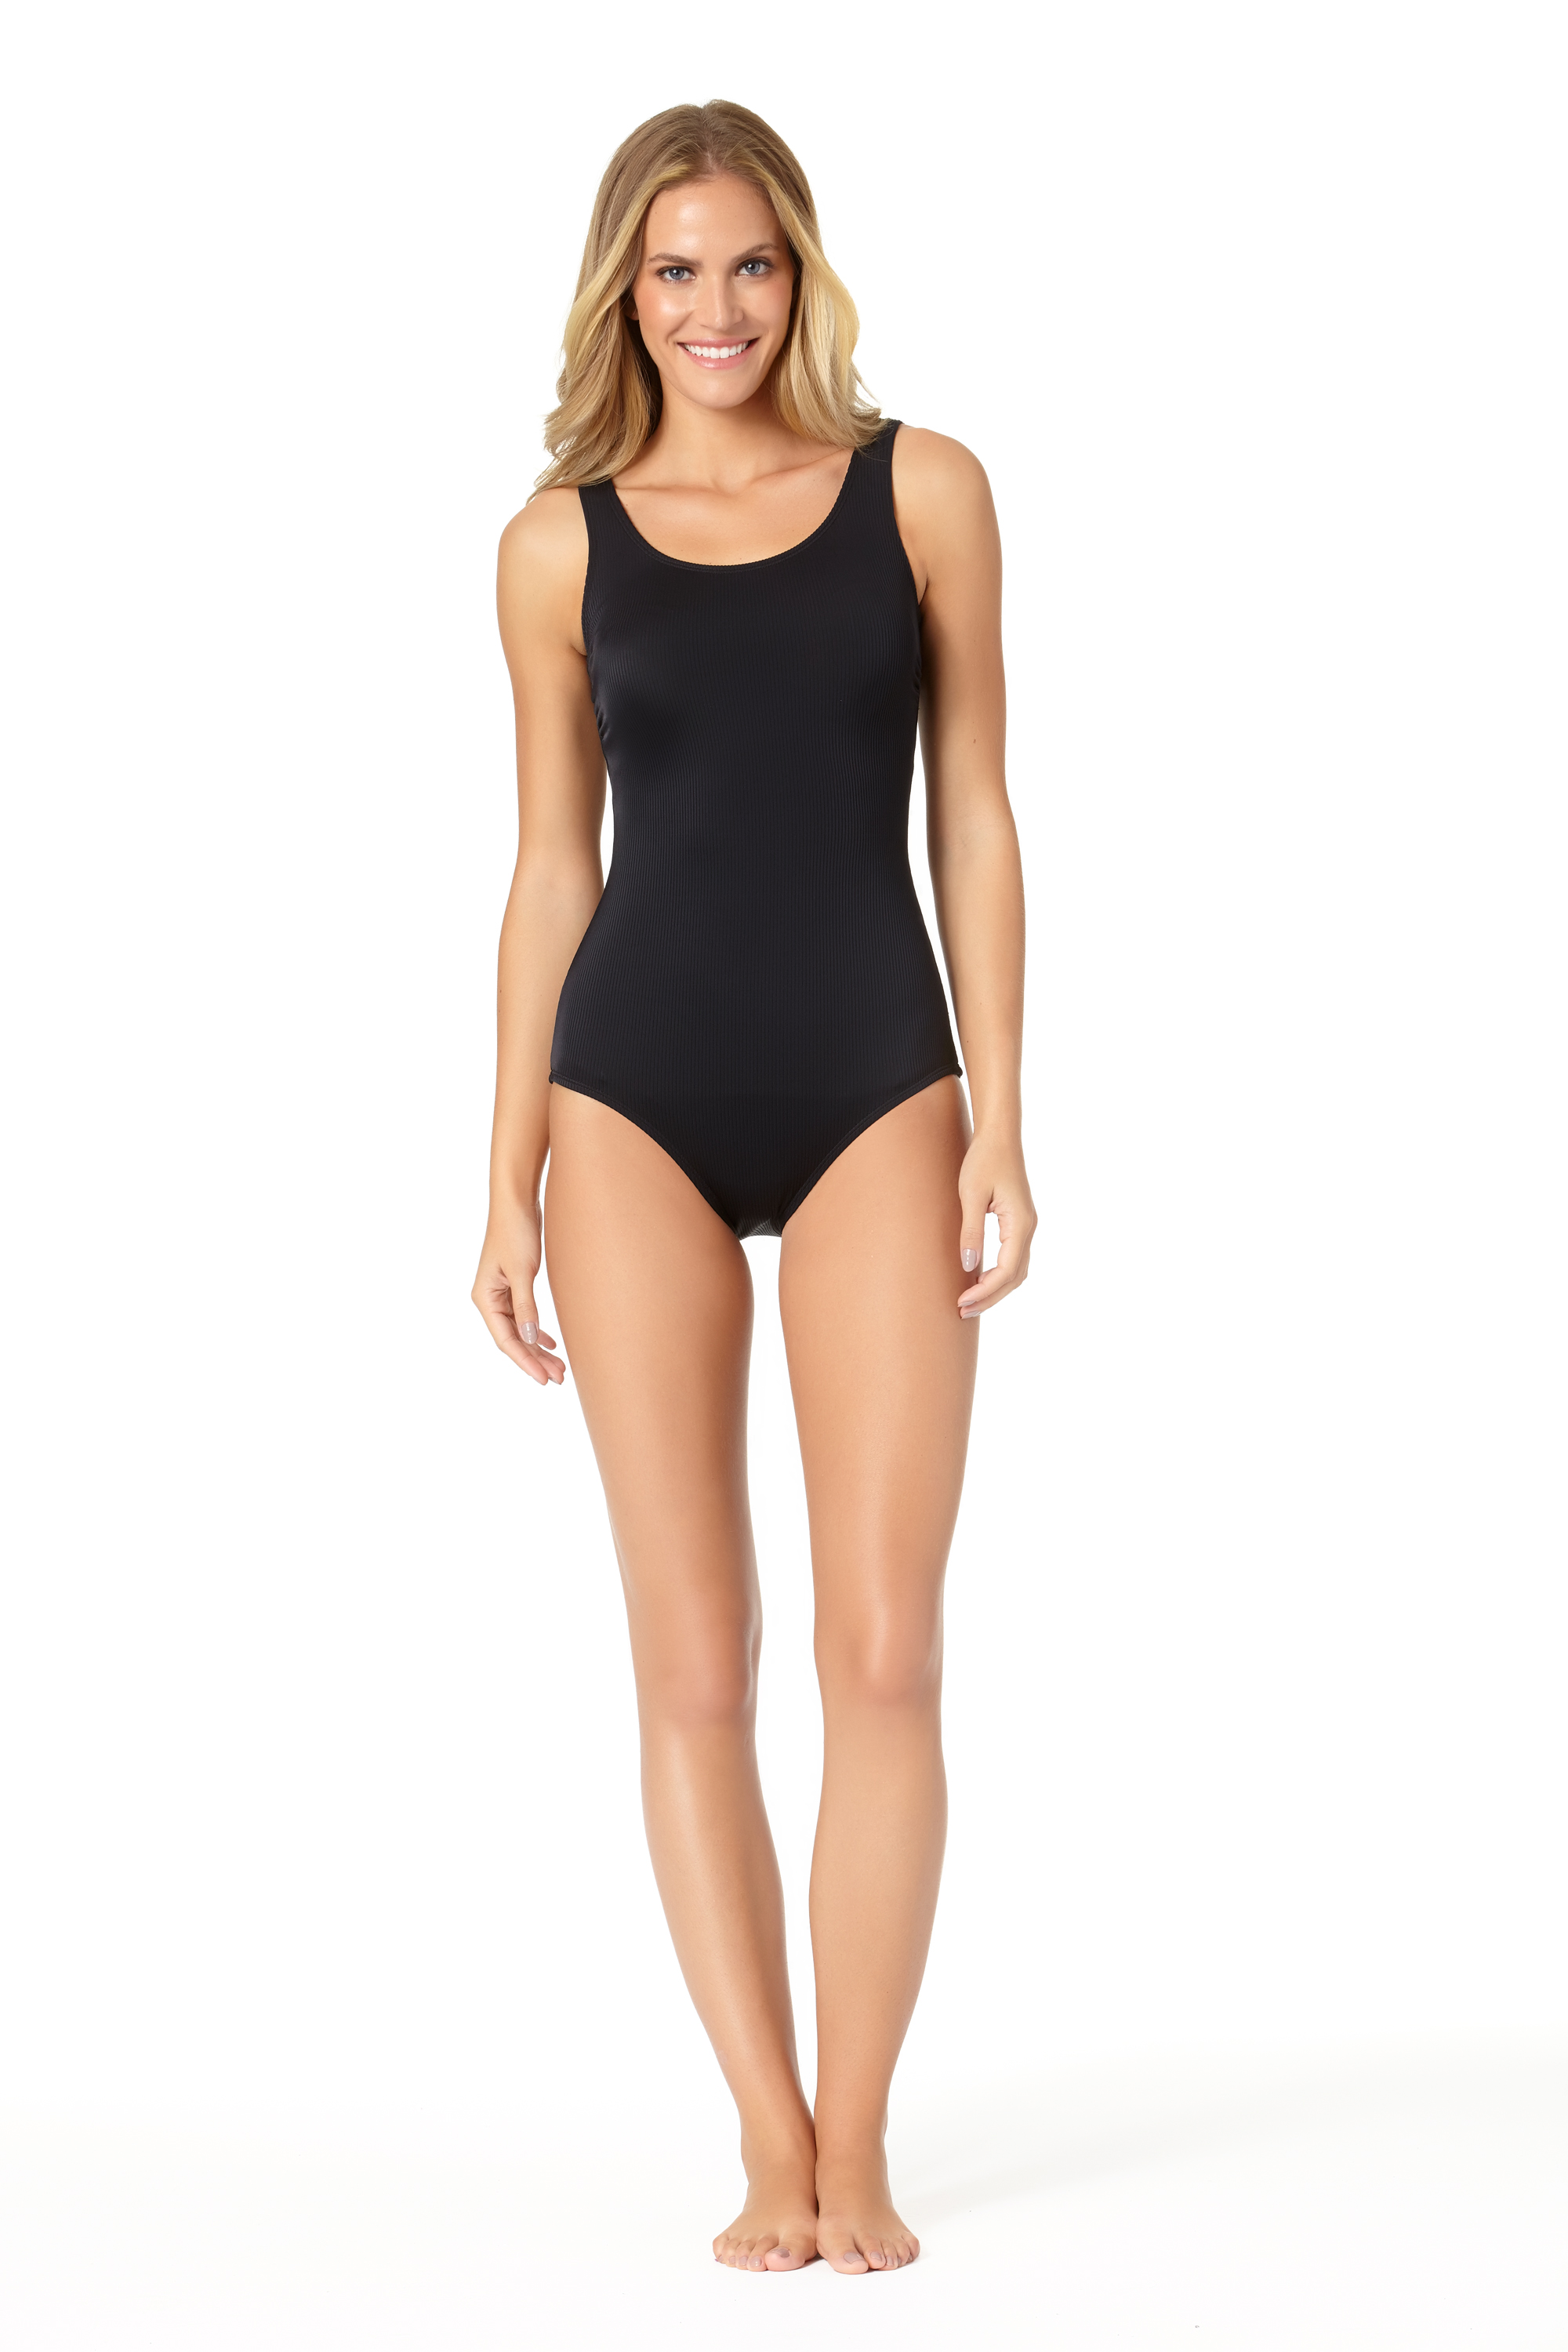 STYLE # CTL07100 - Black Rib One-PieceBUY NOW ON SWIMSUITSDIRECT